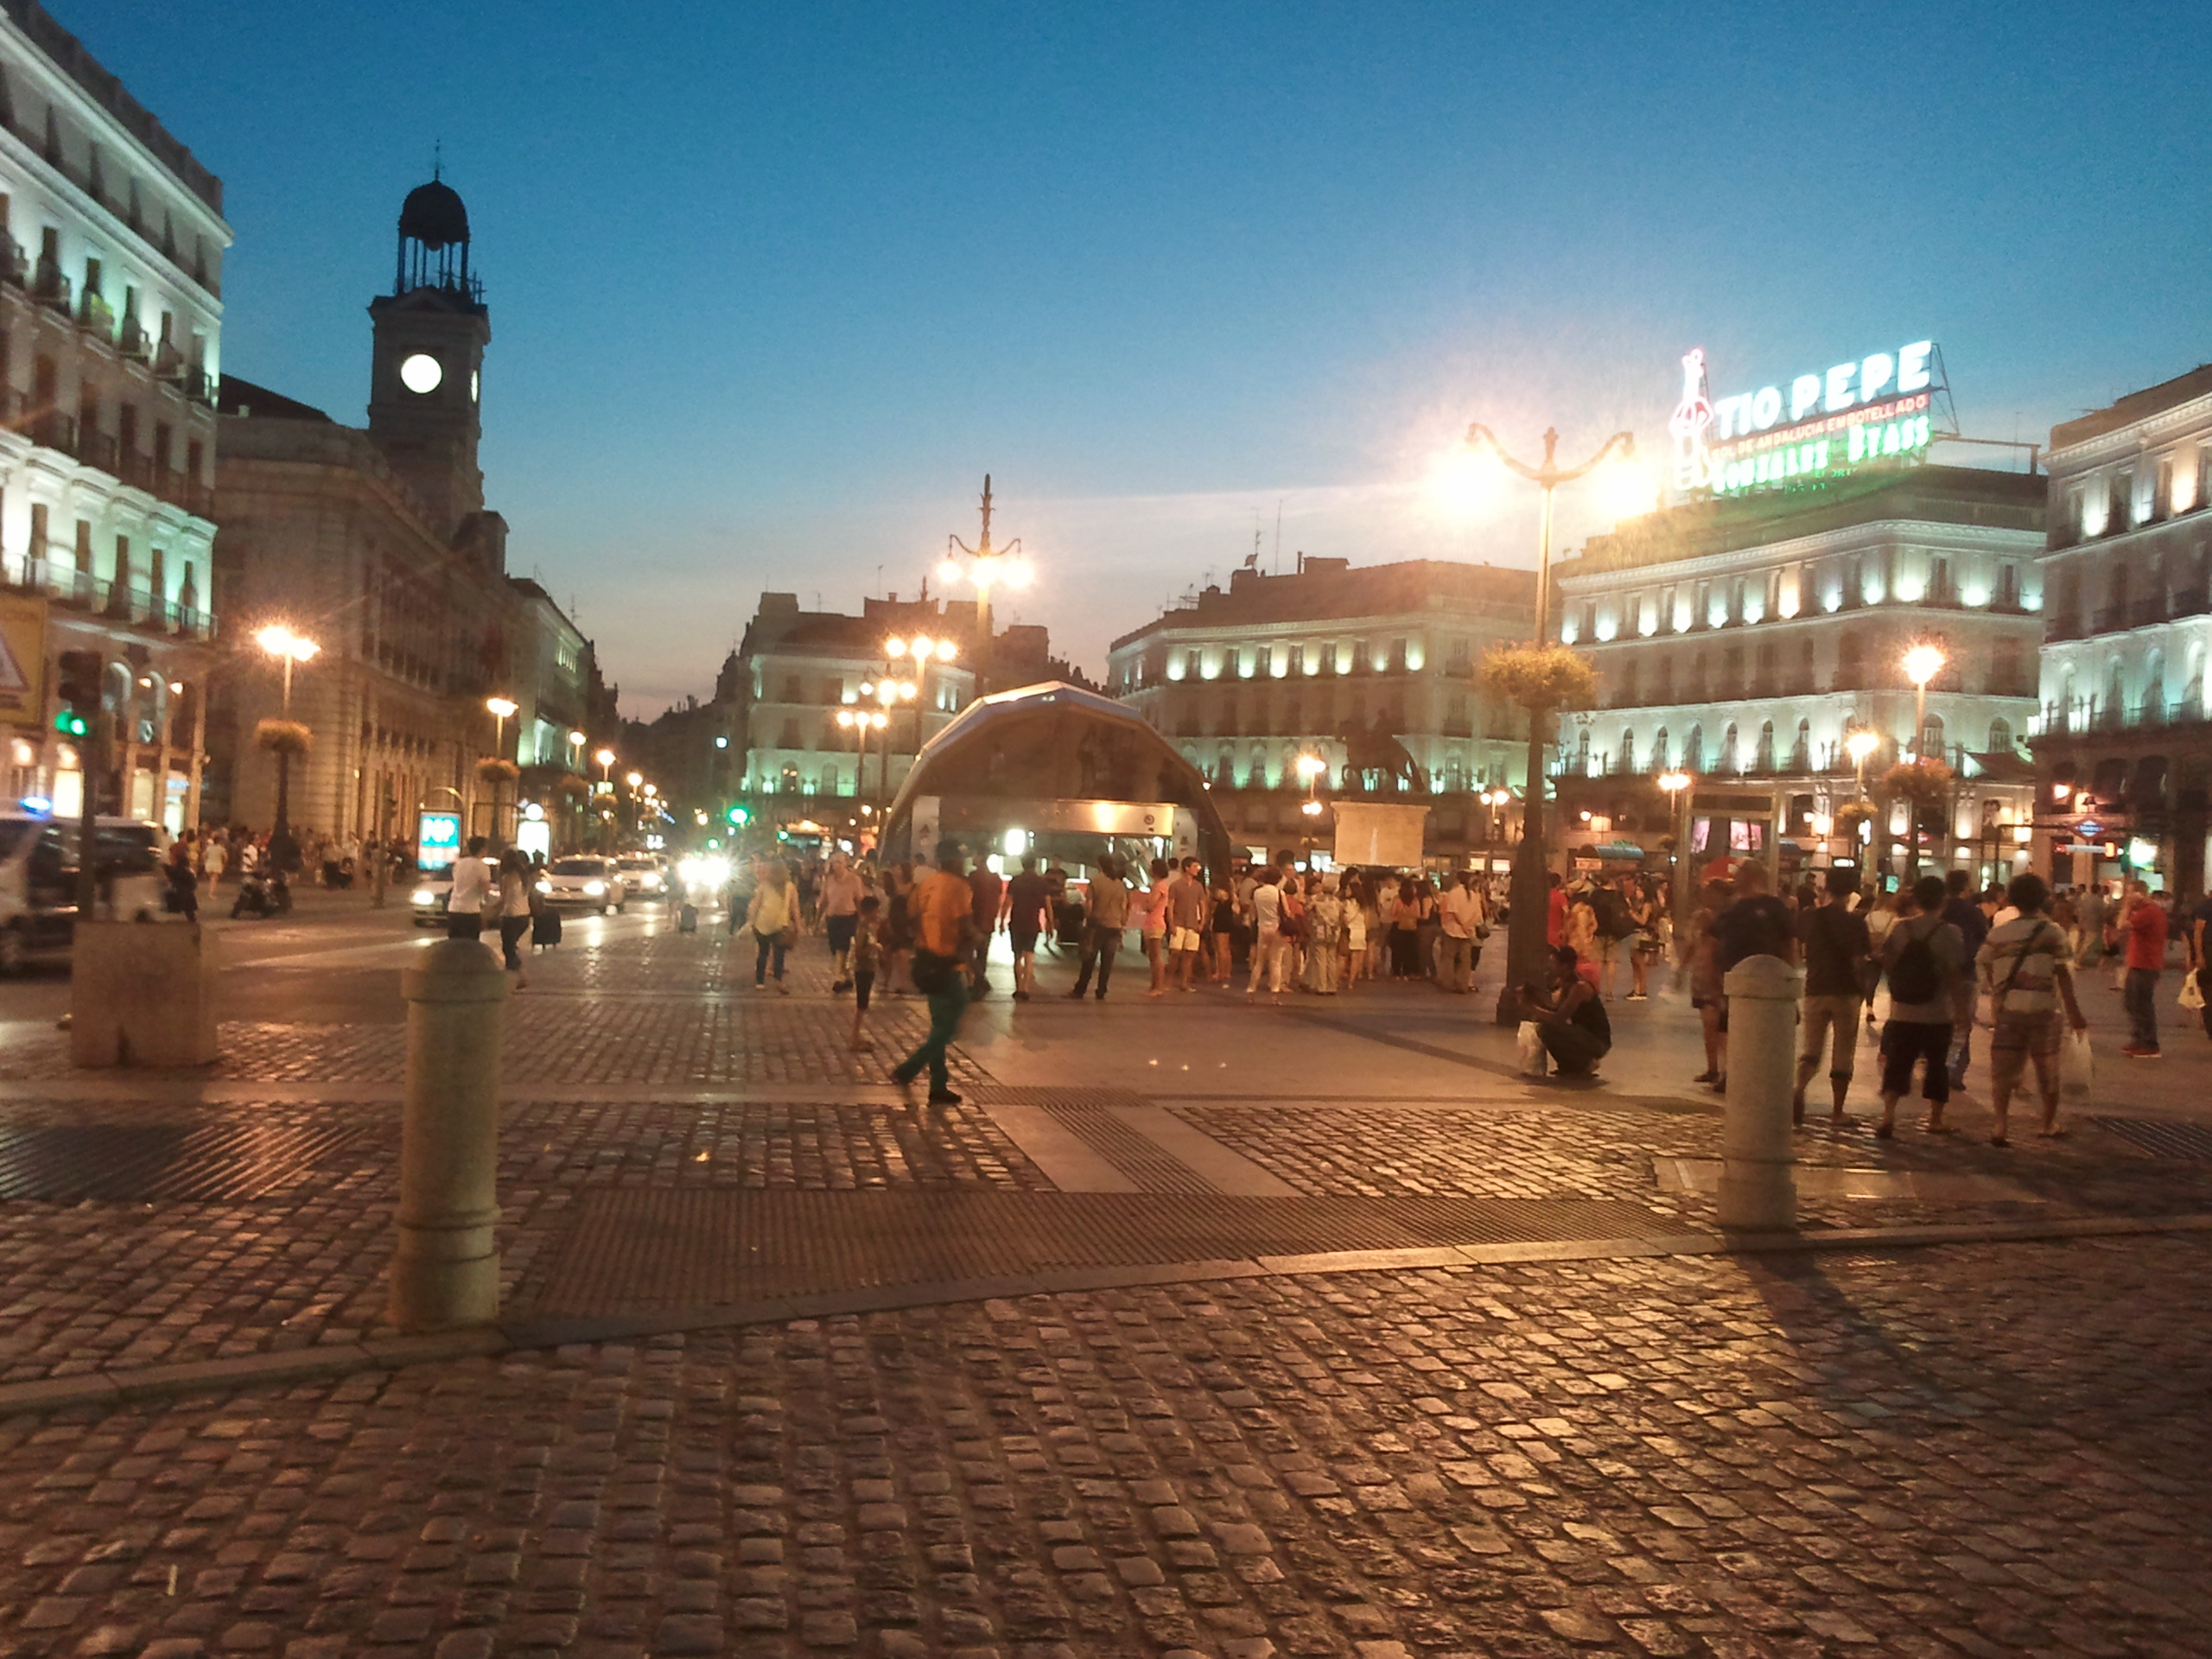 A beautiful Madrid evening at  the Puerta del Sol. (photo credit: Dr. Jim Paluzzi)